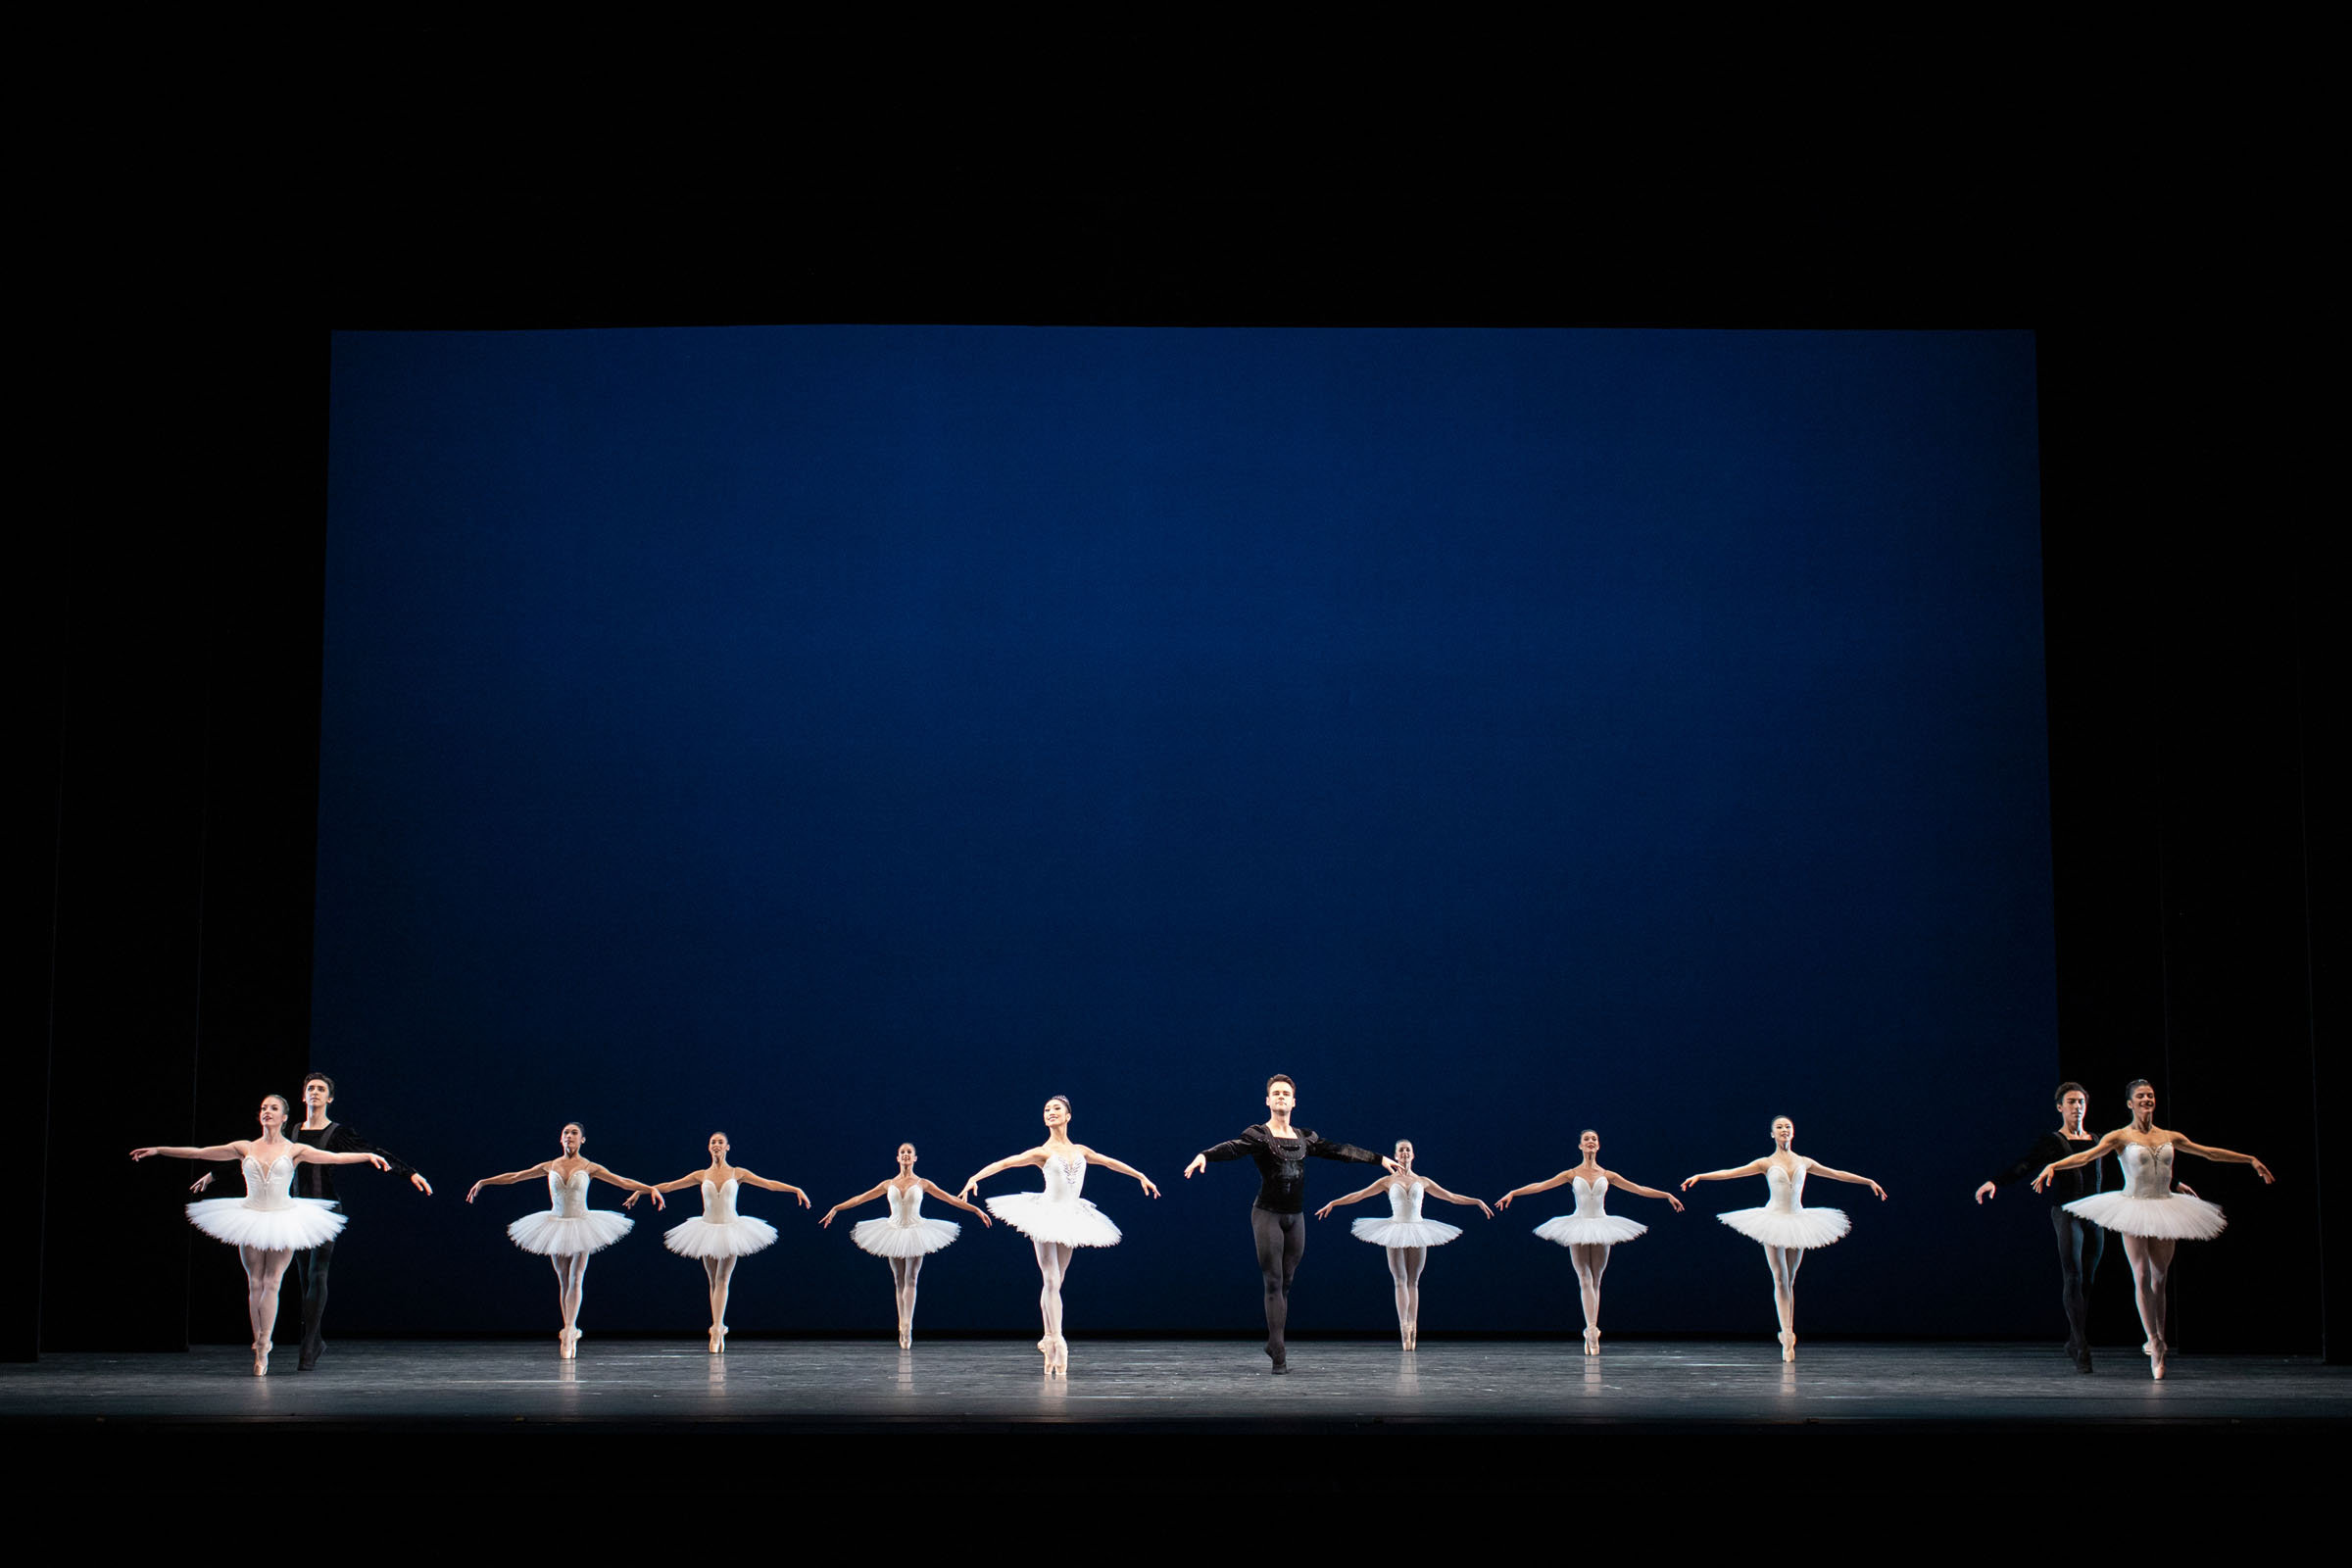 Artists of The Royal Ballet in Symphony in C, at the Royal Opera House